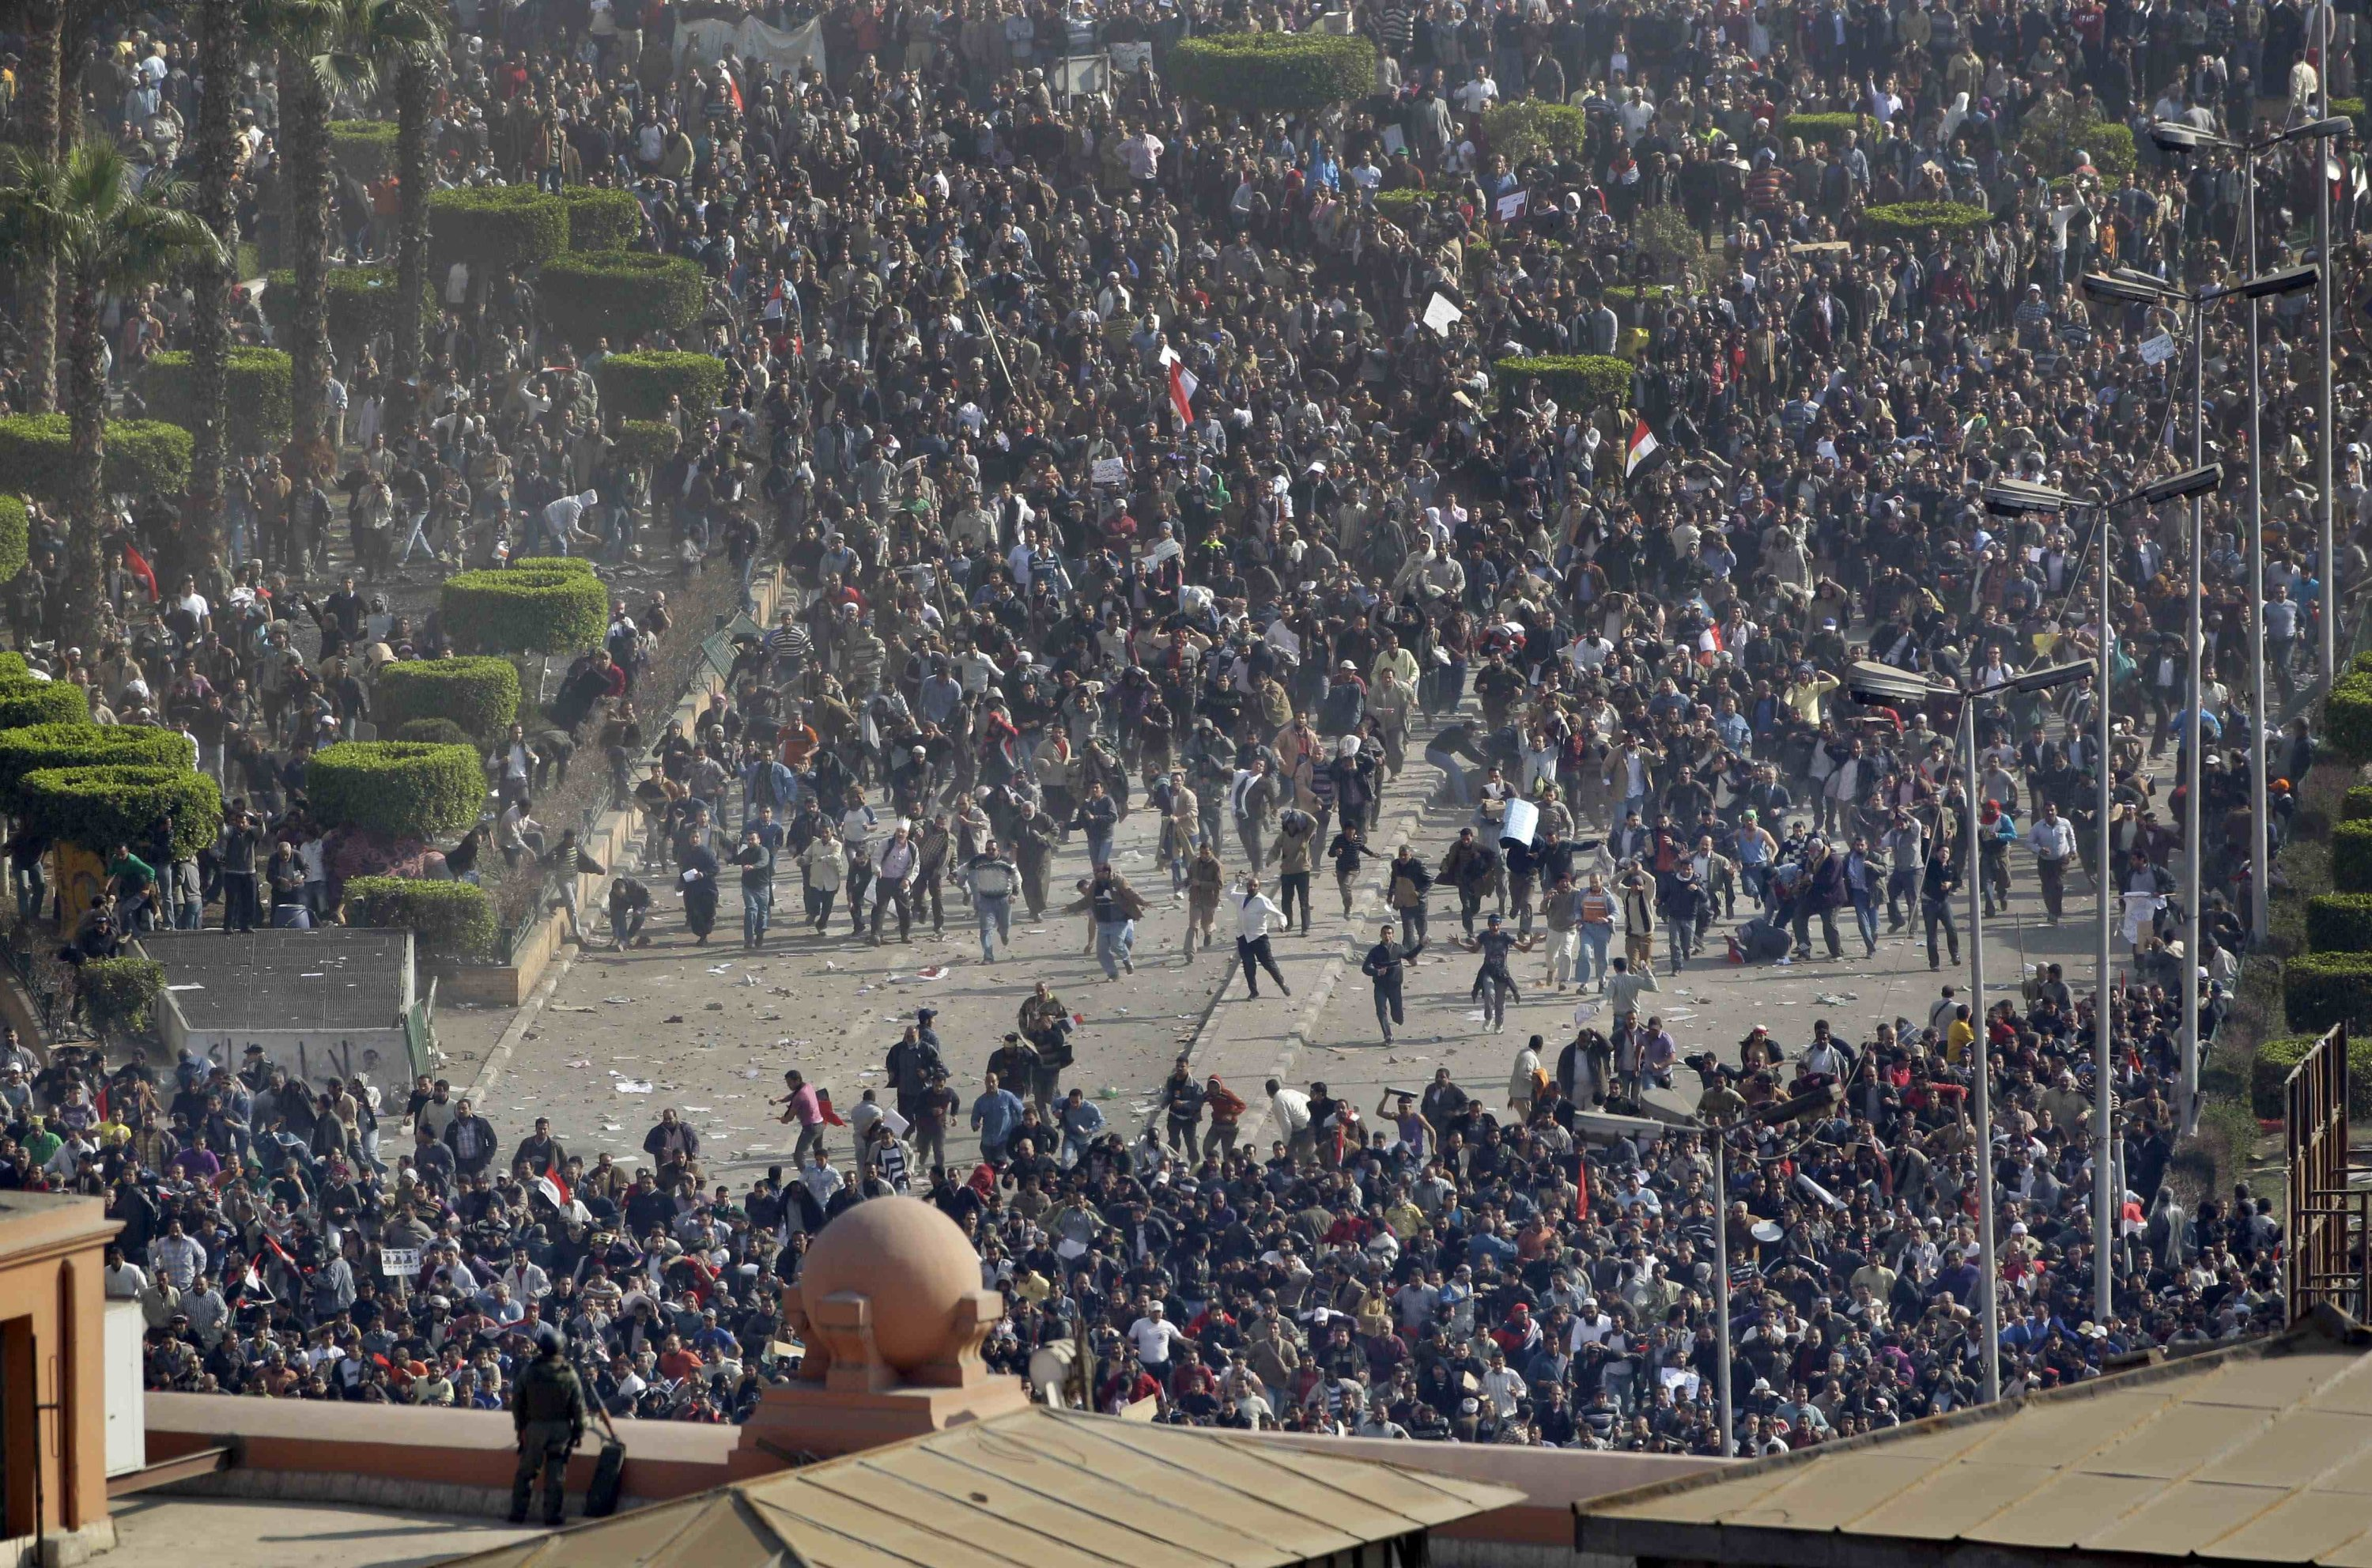 Pro-government demonstrators, foreground, clash with anti-government demonstrators as an Egyptian soldier on the rooftop of the Egyptian Museum observes the center of anti-government demonstrations at Tahrir square, Cairo, Egypt, Feb. 2, 2011. (AP Photo)